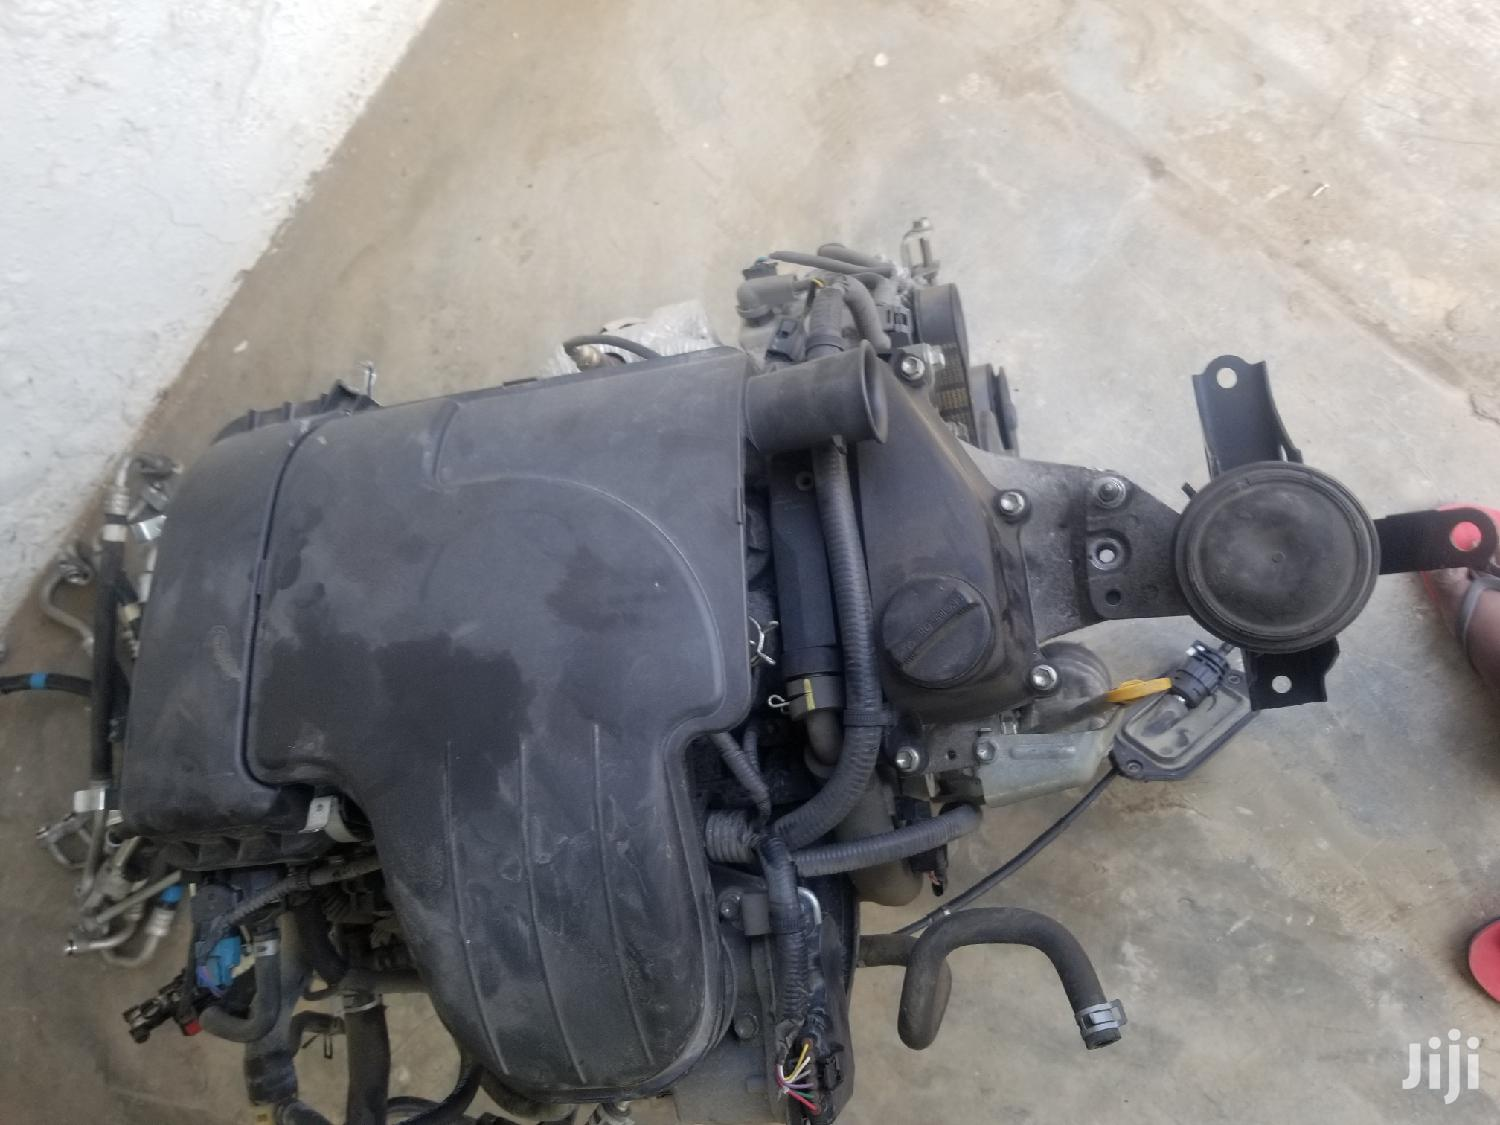 Toyota Vitz Engine | Vehicle Parts & Accessories for sale in Tema Metropolitan, Greater Accra, Ghana